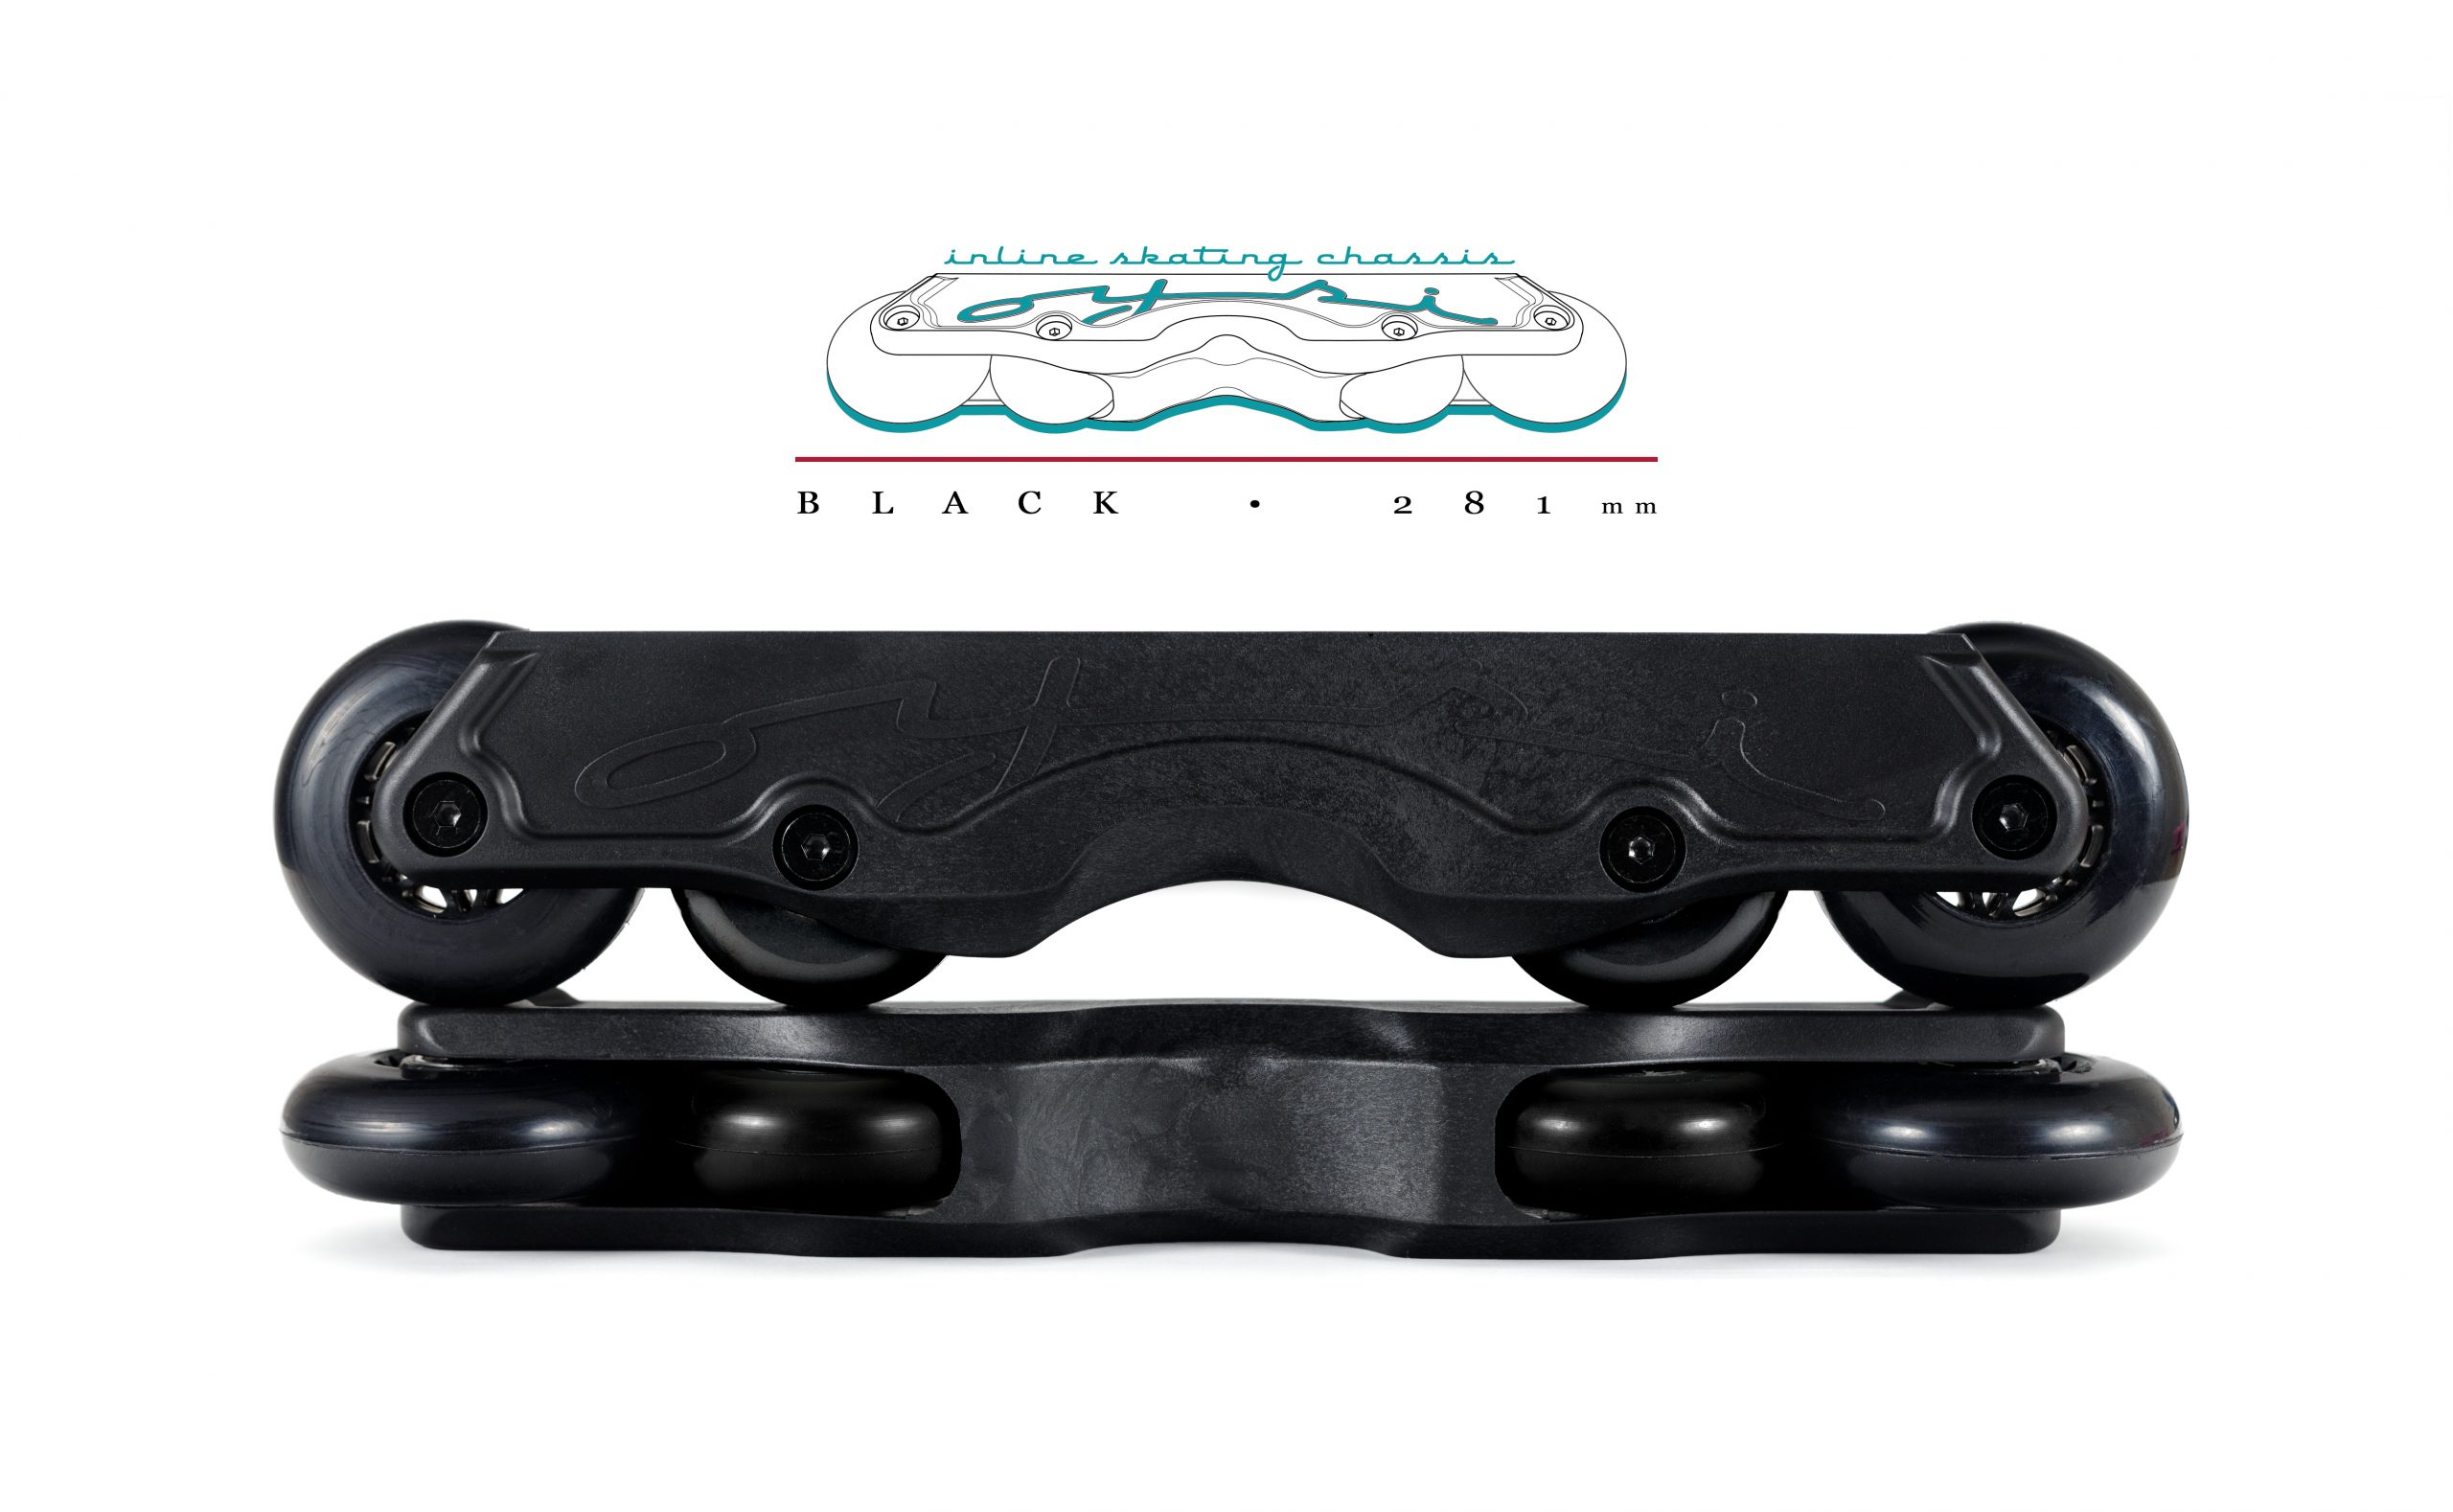 OISC Oysi Inline Skating Chassis 72mm Black